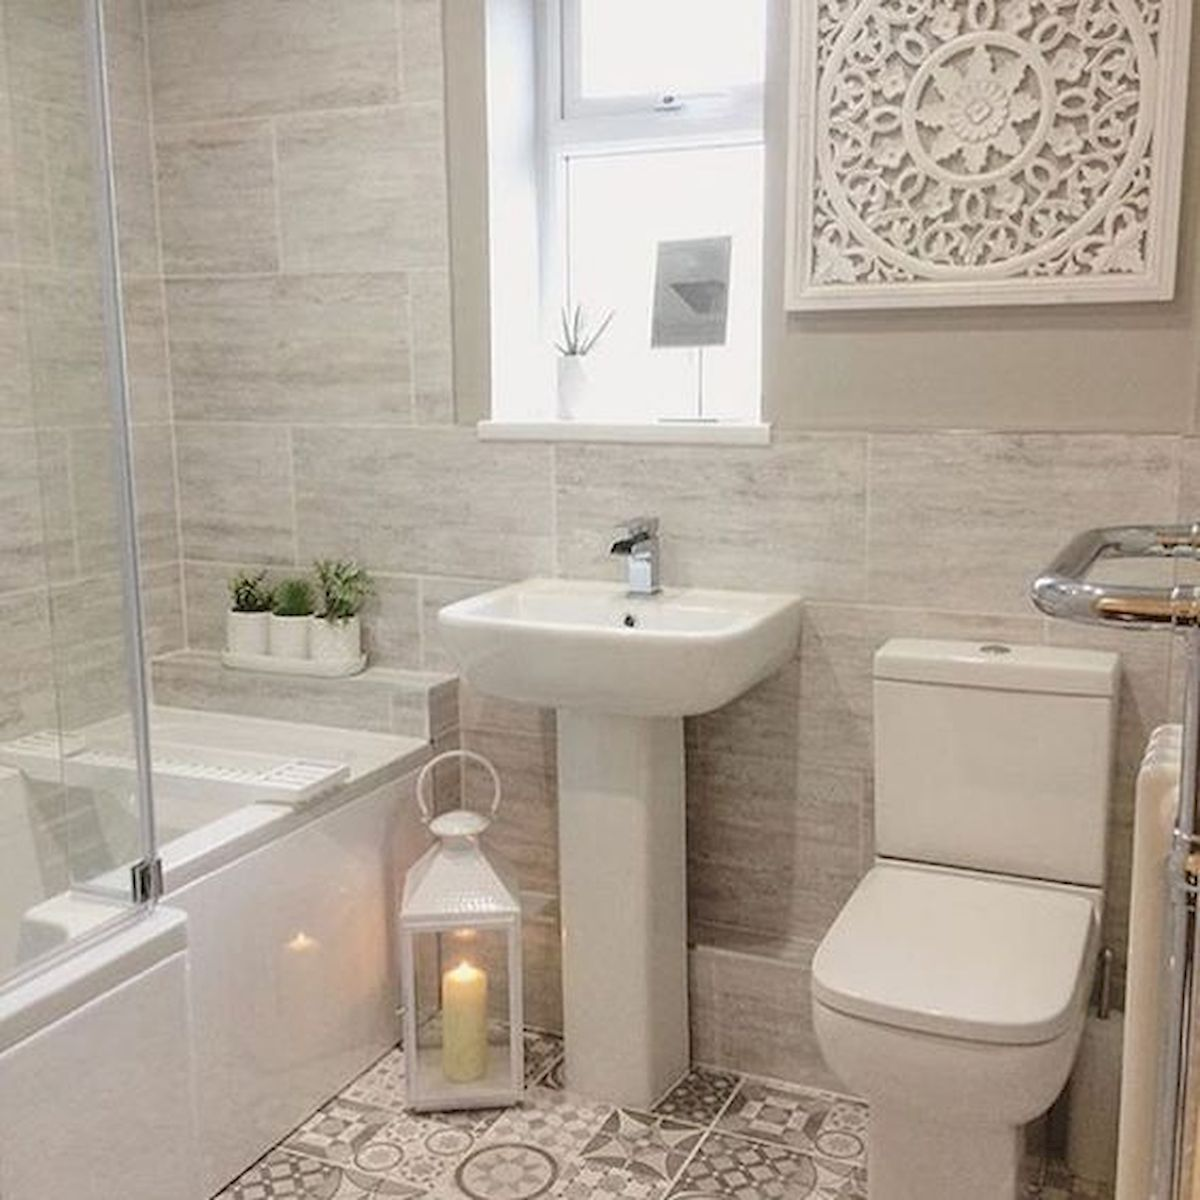 50 Cozy Bathroom Design Ideas For Small Space In Your Home